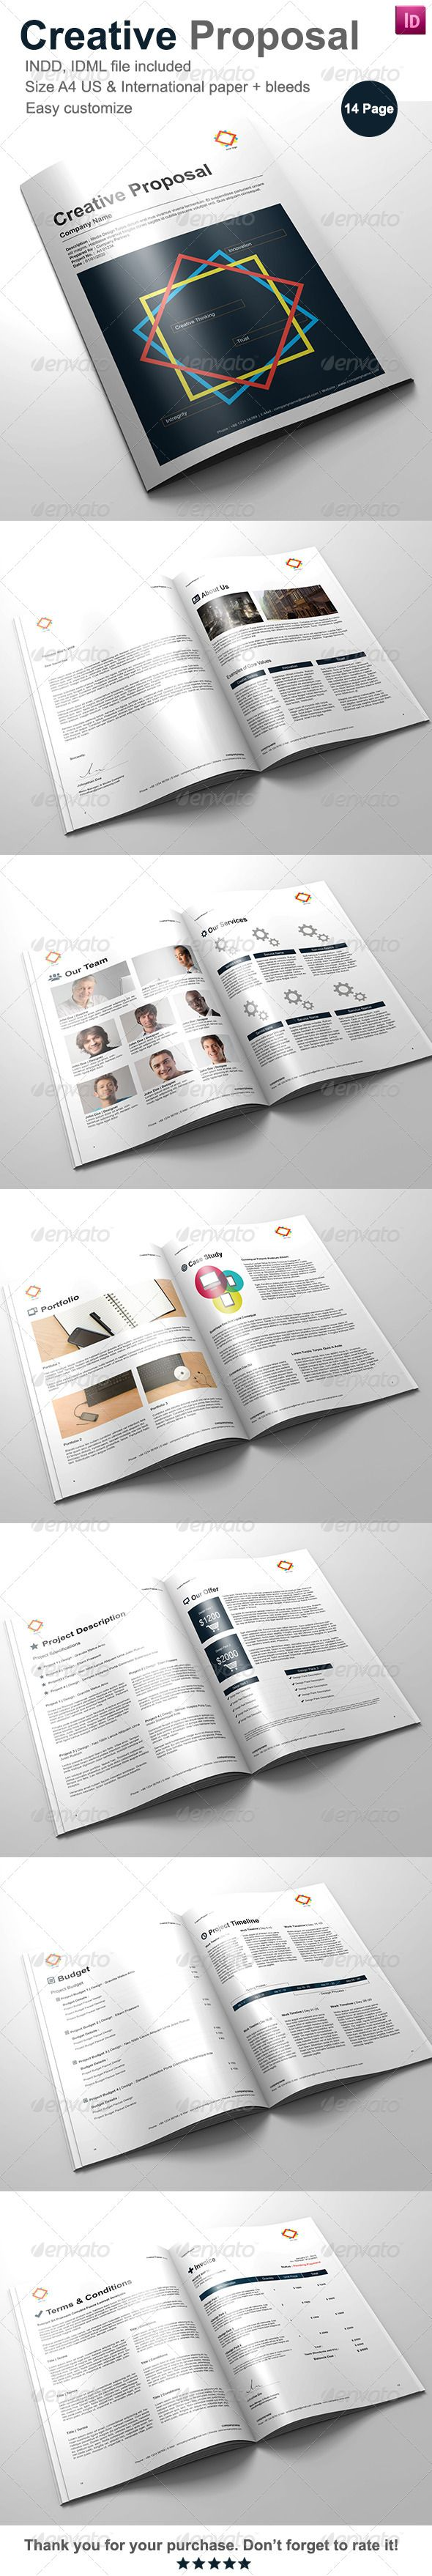 Commercial Proposal Format Glamorous 504 Best Business Proposal Images On Pinterest  Proposal Templates .